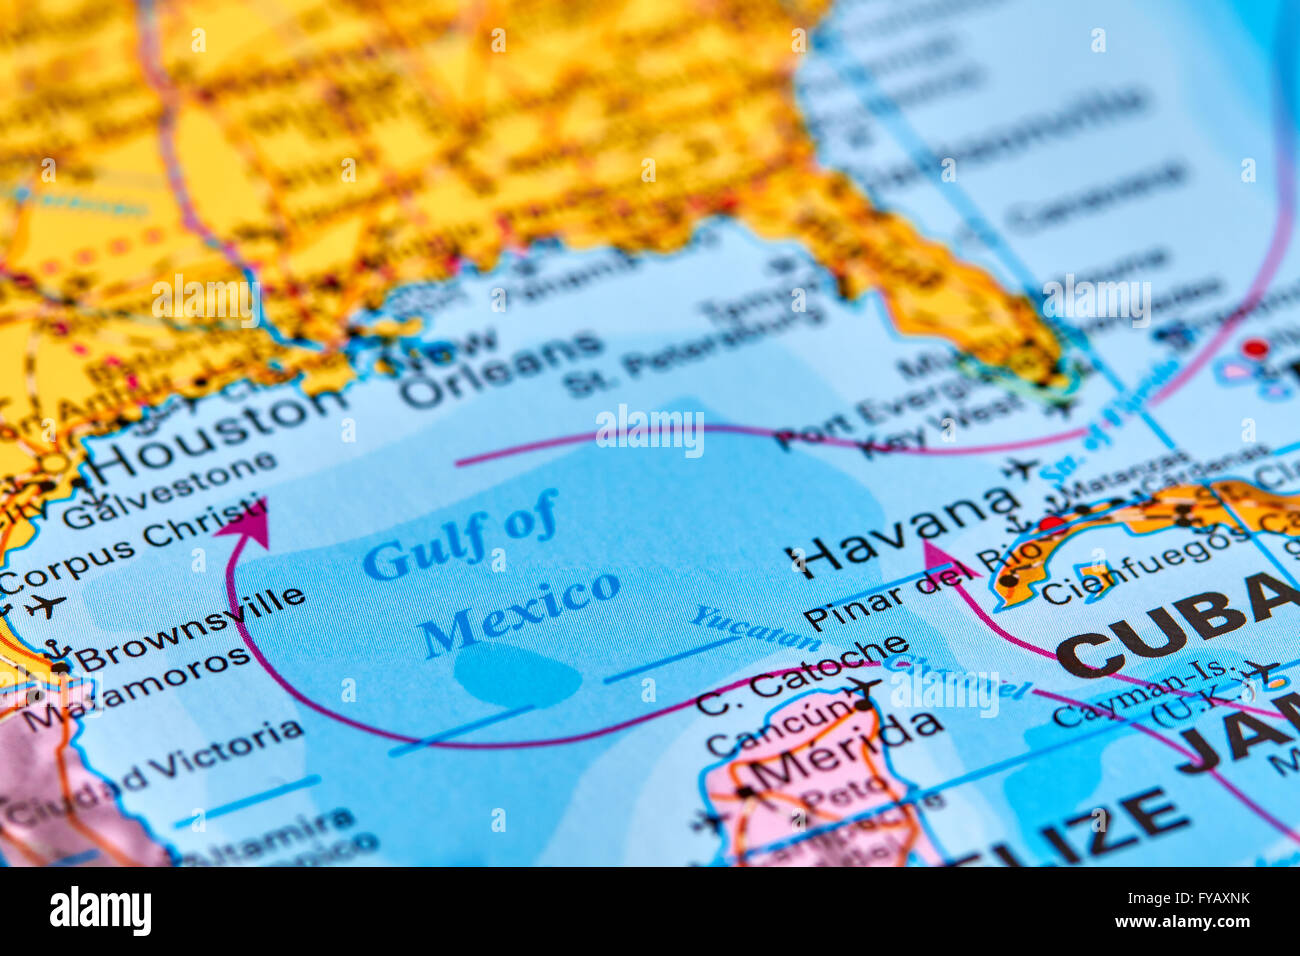 Gulf of mexico on the world map stock photo 102888063 alamy gulf of mexico on the world map gumiabroncs Images